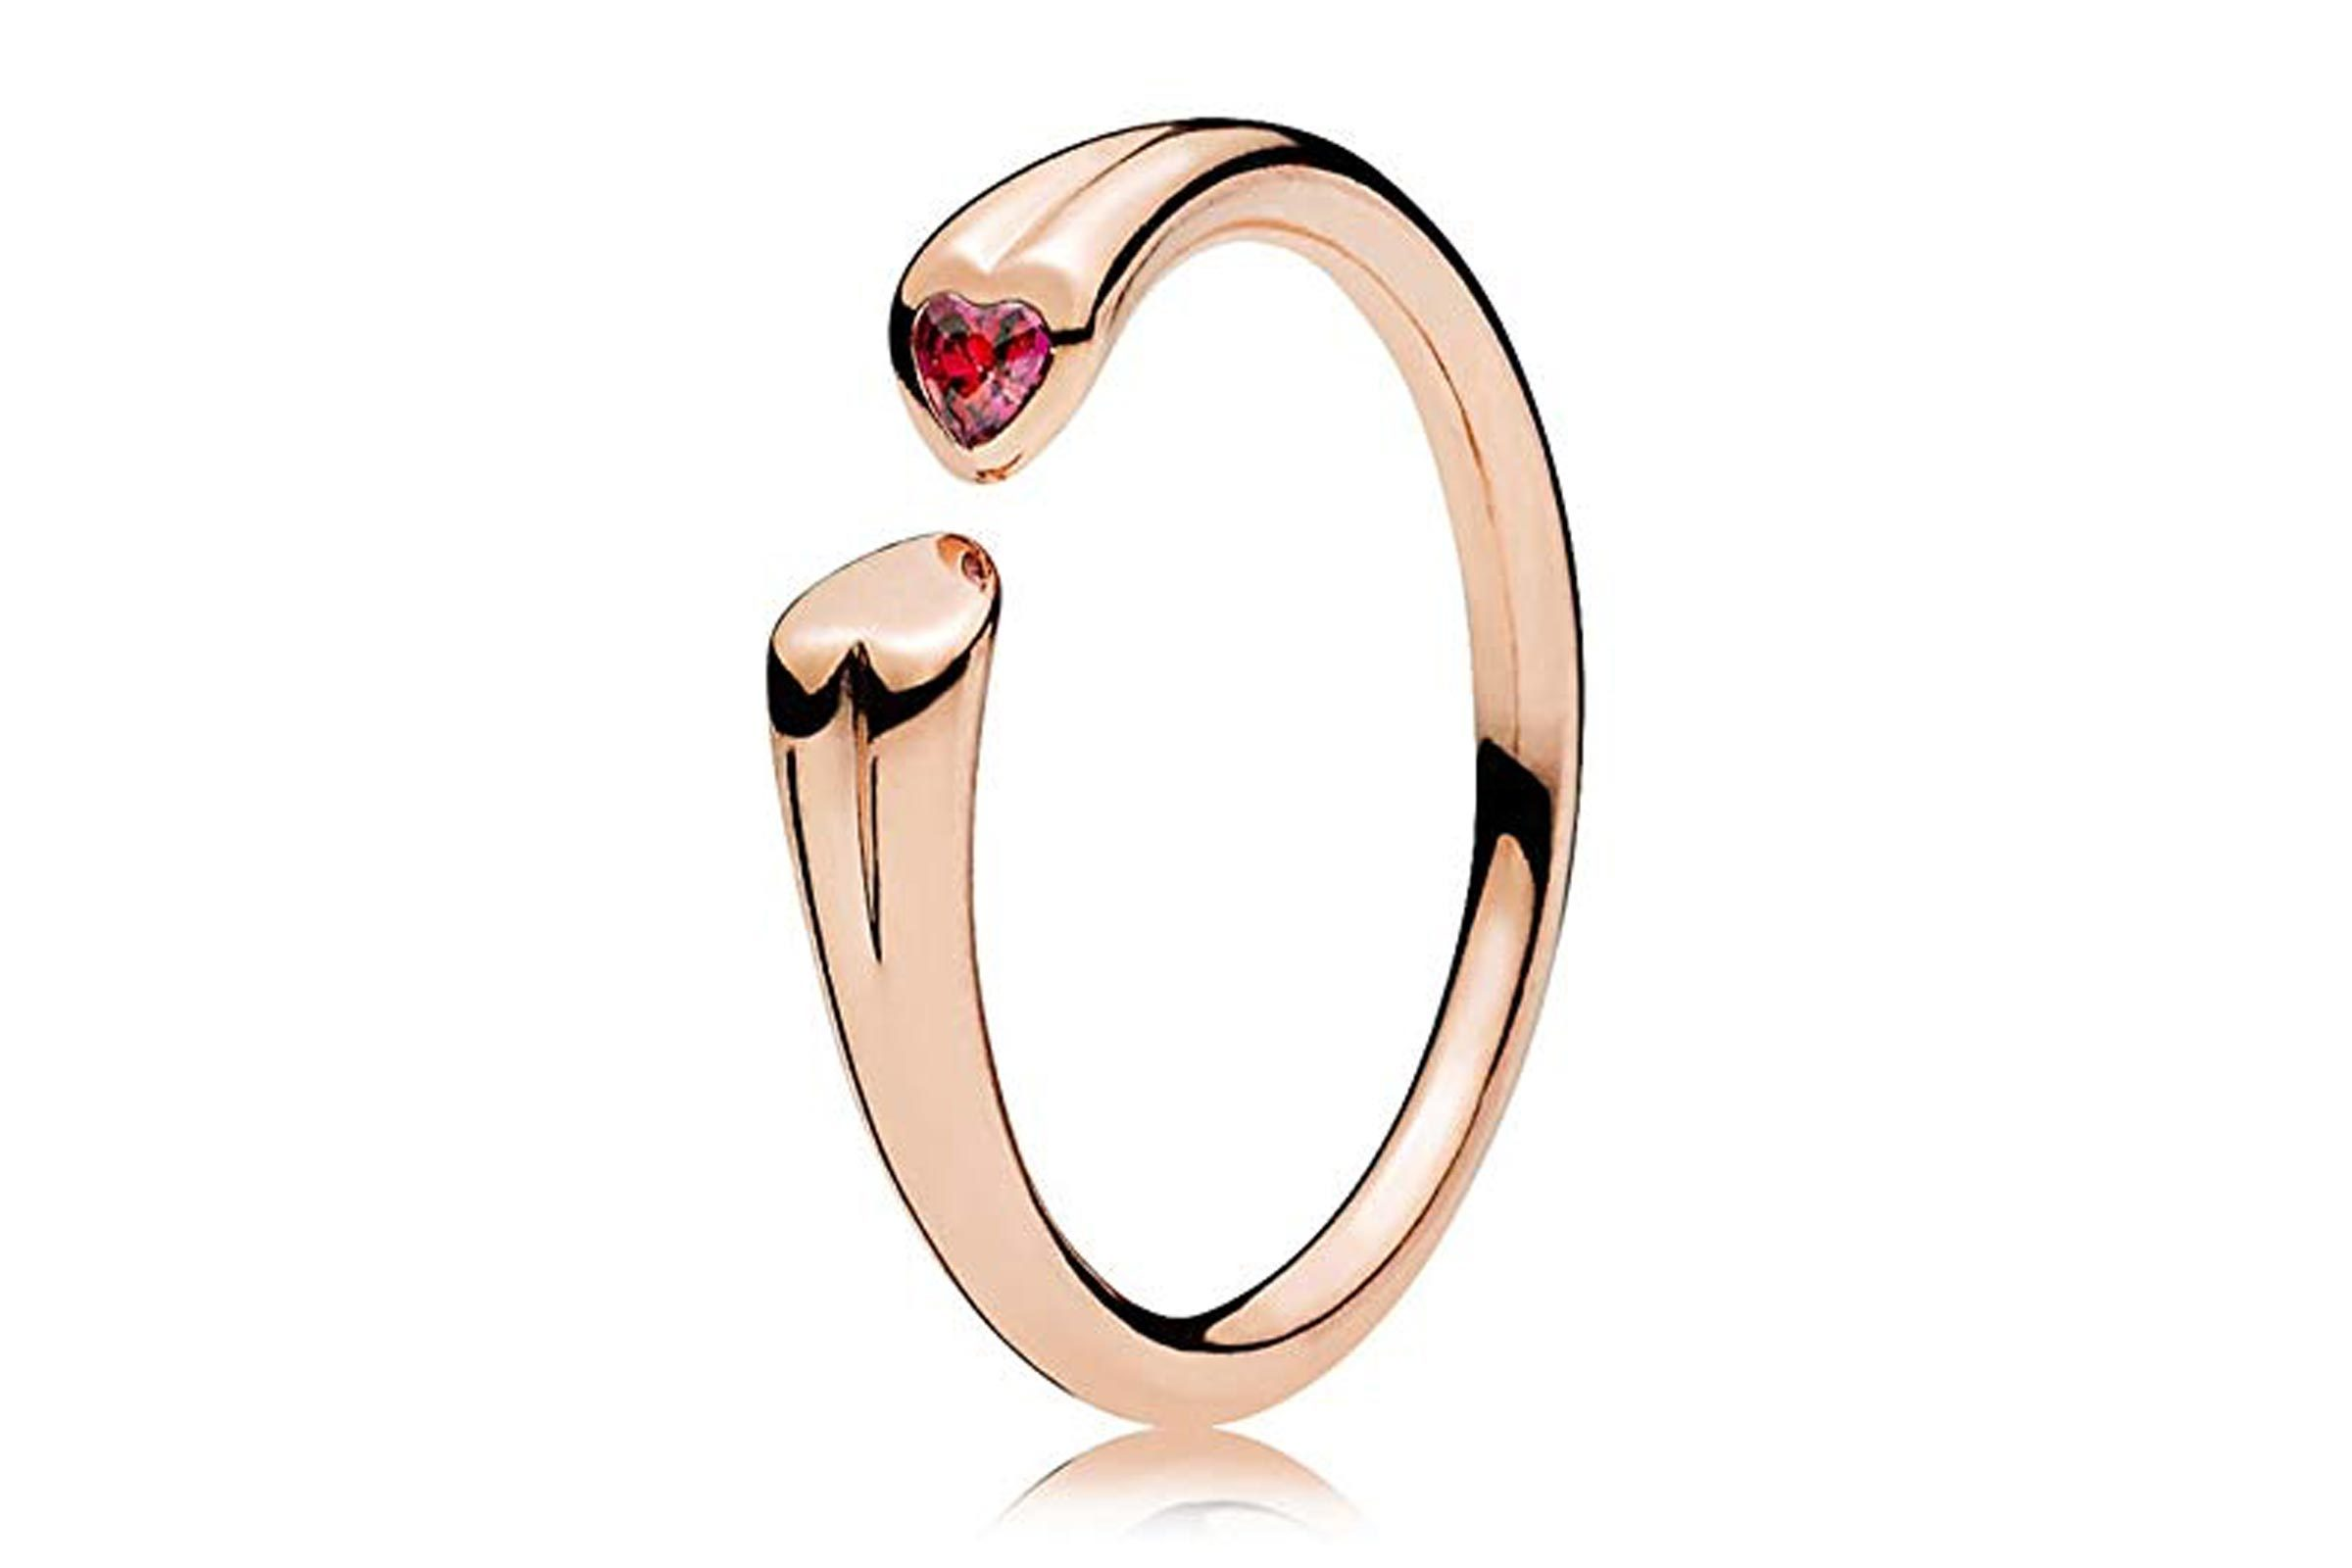 PANDORA Two Hearts Open Ring in PANDORA Rose W/ 1 Flush-Set Heart-Shaped Red CZ 186570CZR-58, 8.5 US